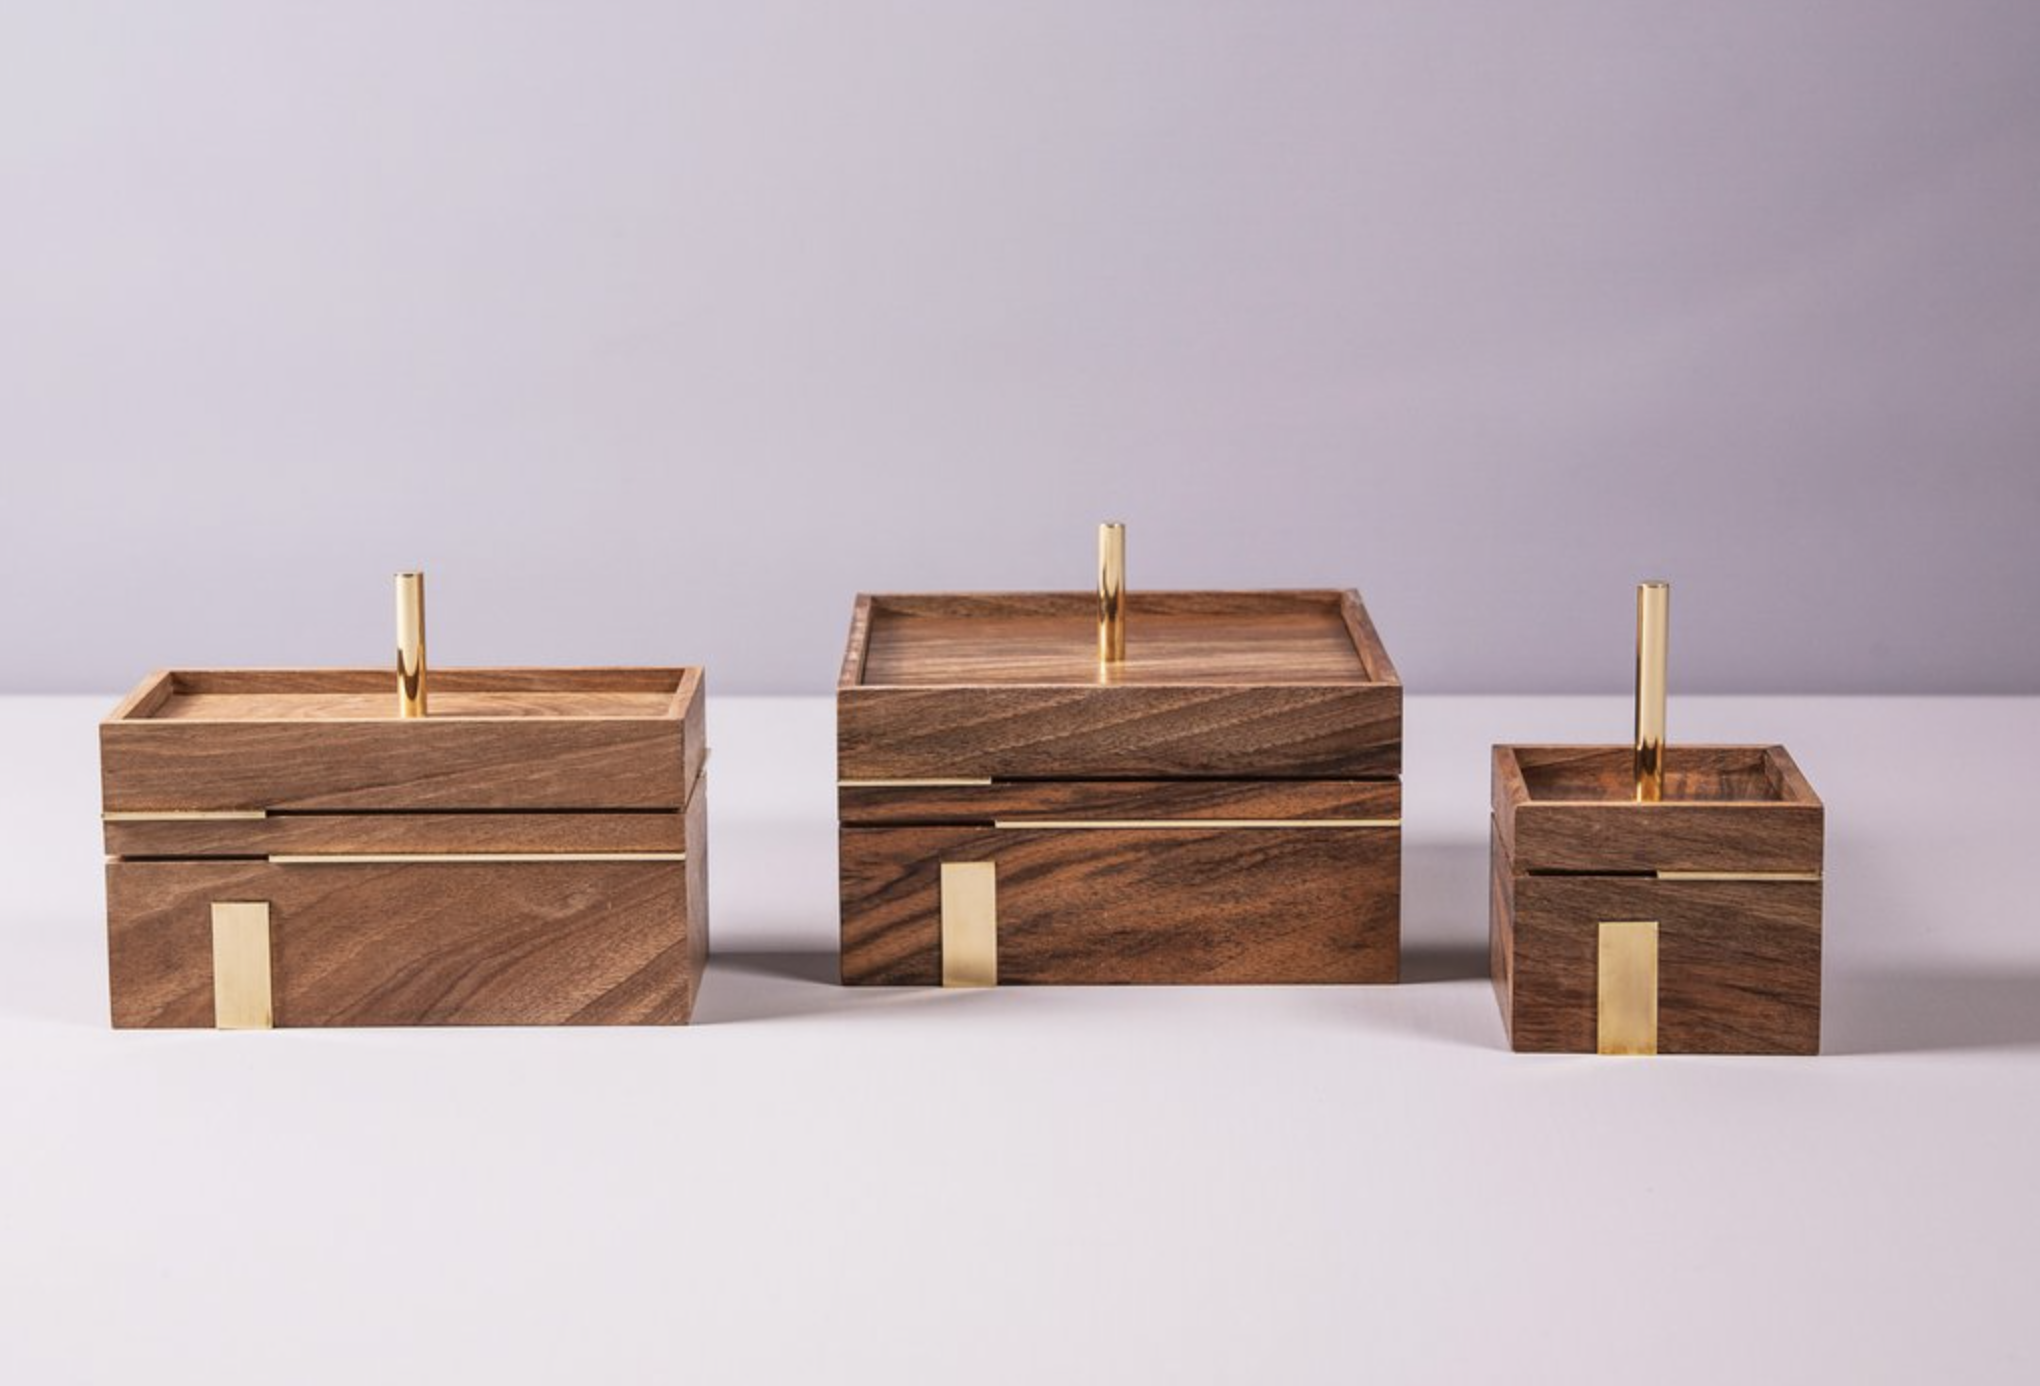 Spain's Mad Lab makes quality pieces from wood. Arkhifactory 01 by Vicent Martinez 131 euros